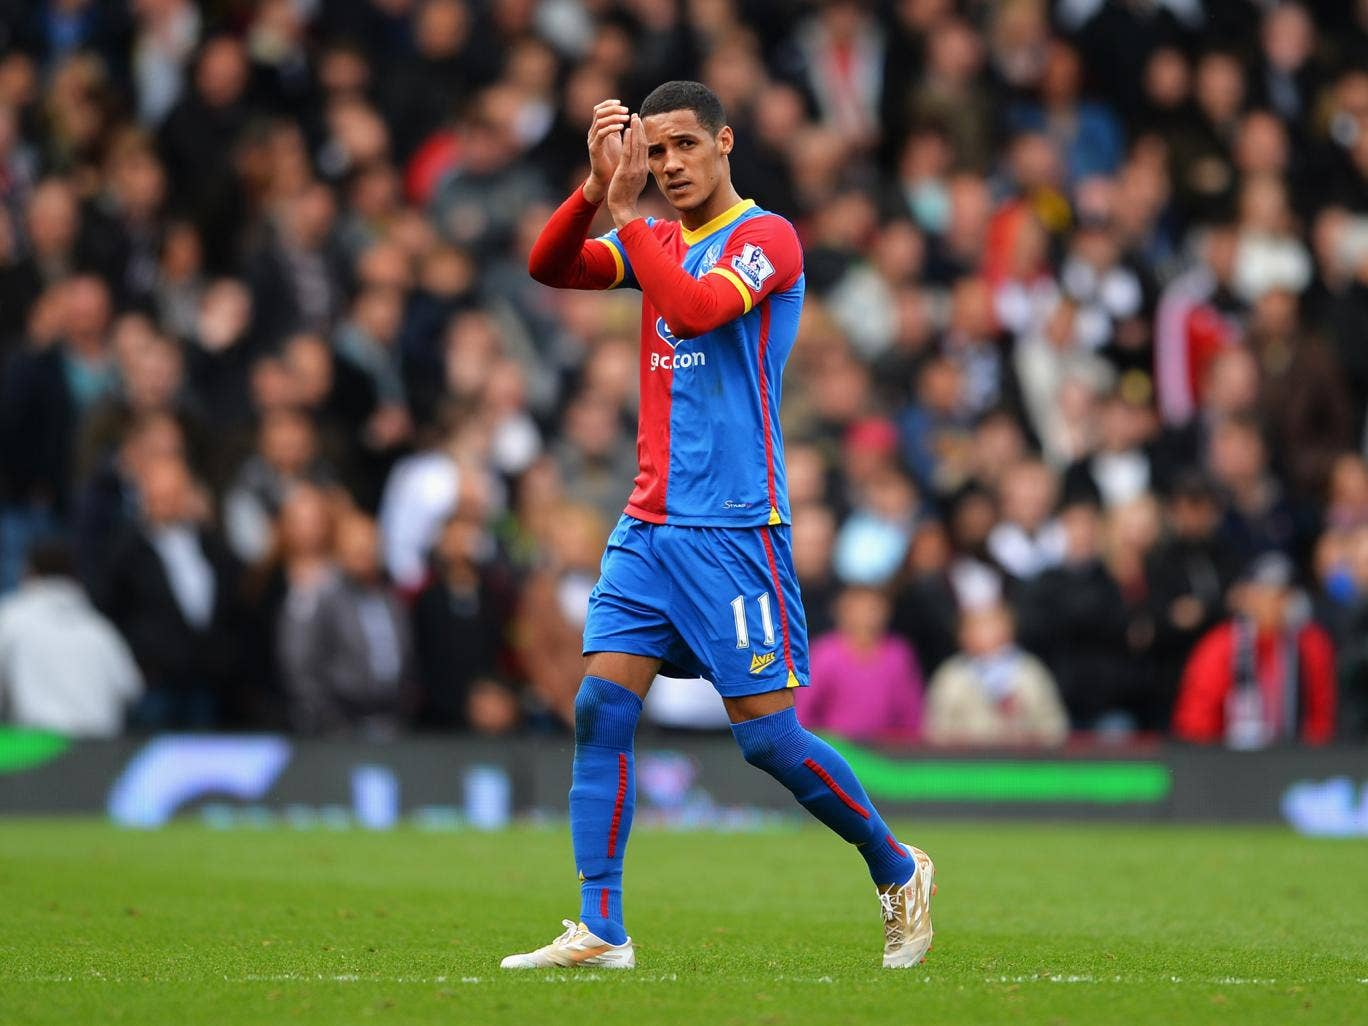 Tom Ince has been approached by Inter Milan